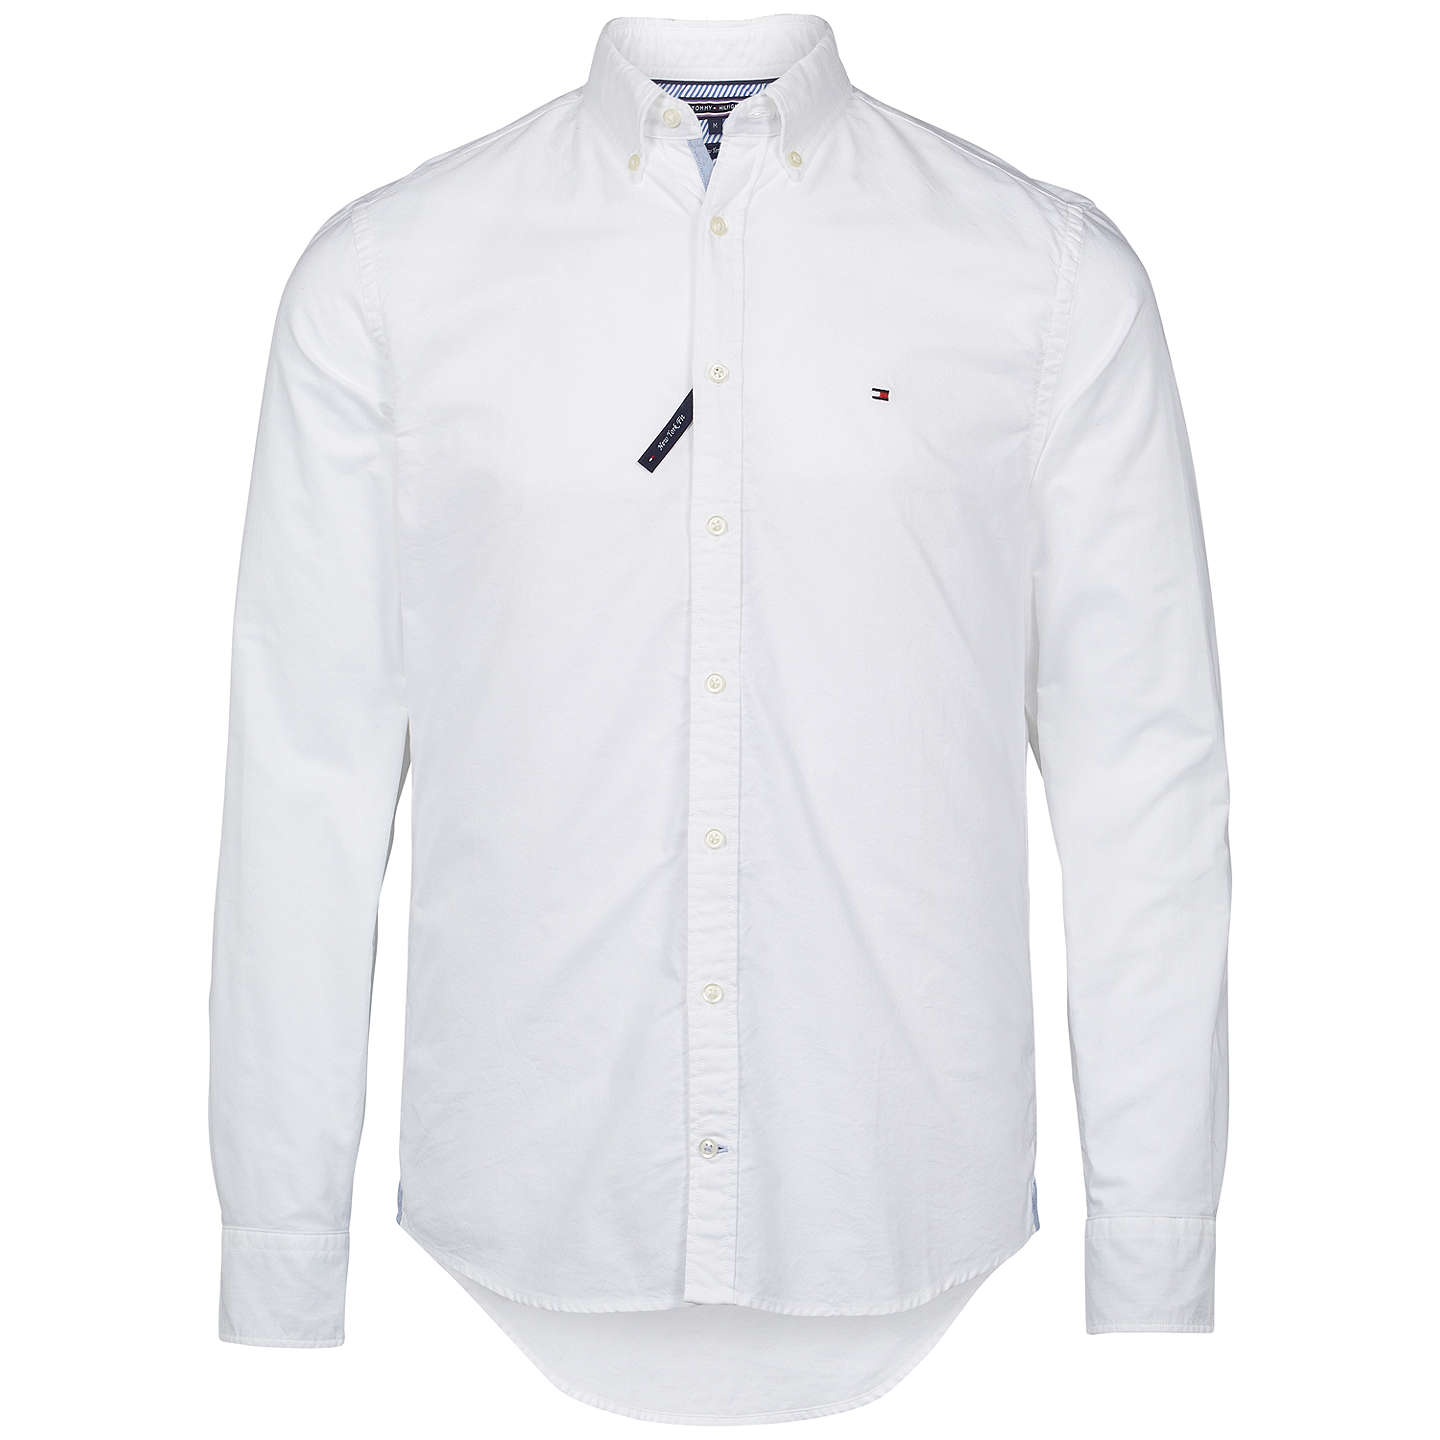 SHIRTS - Shirts Ivy Oxford Authentic Cheap Price r2uP47M